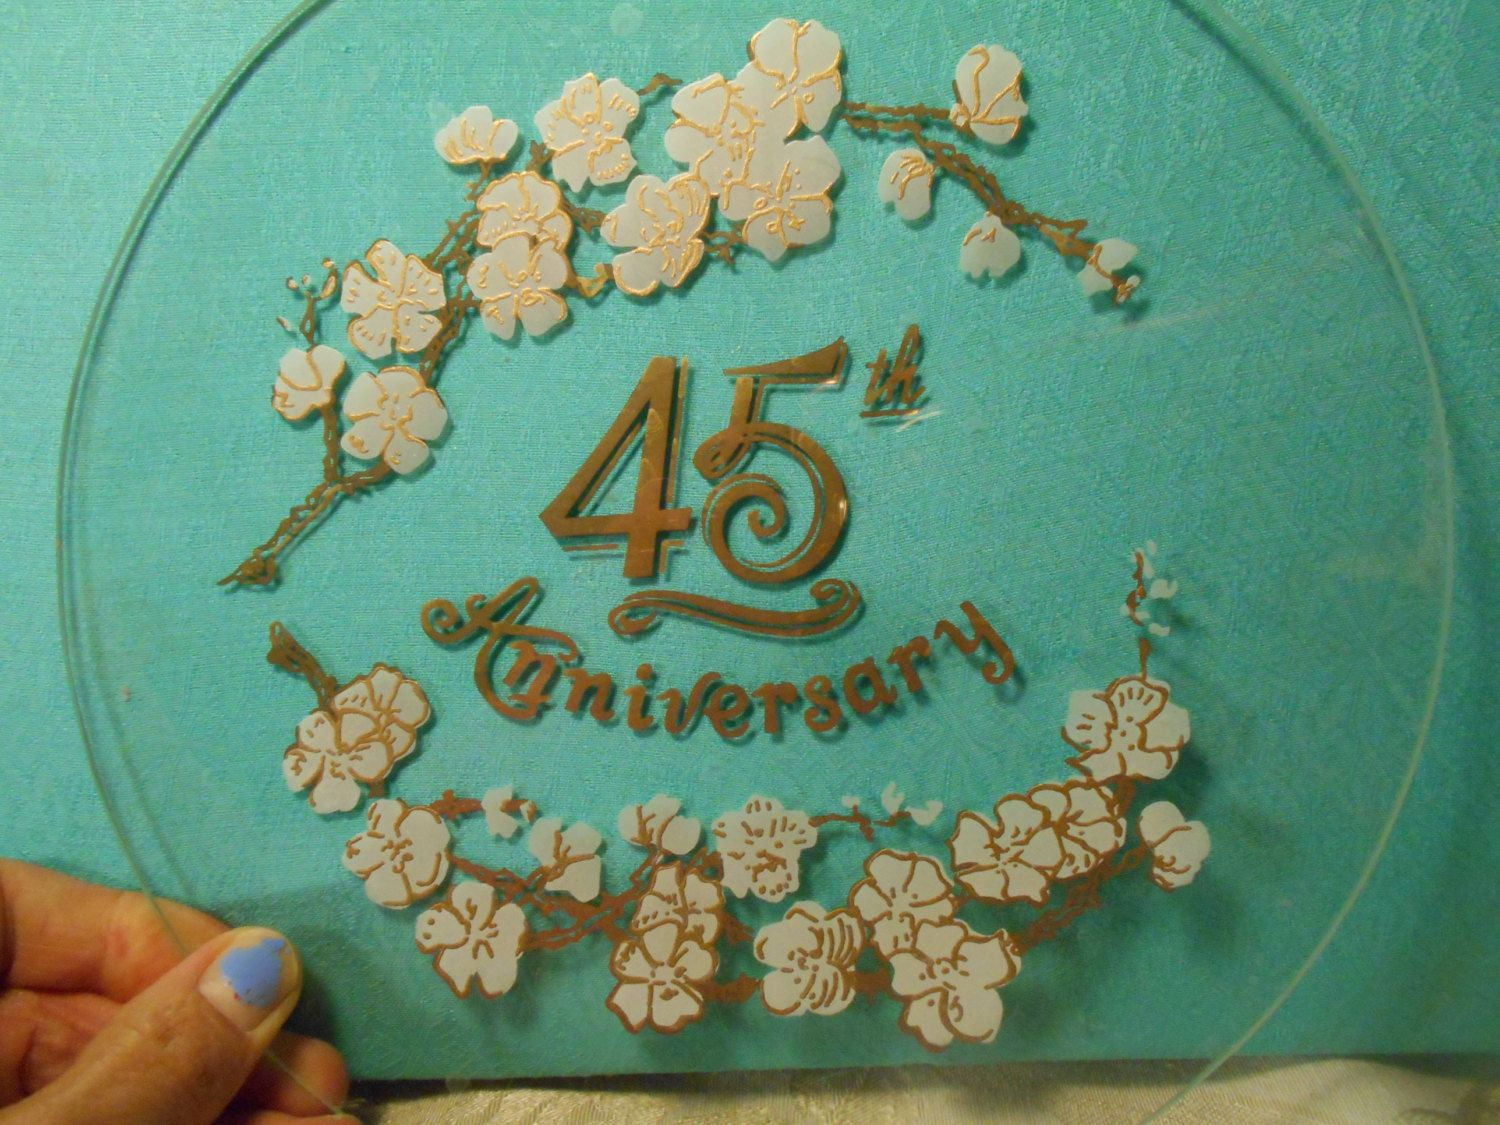 45th anniversary gift plate clear glass white and gold